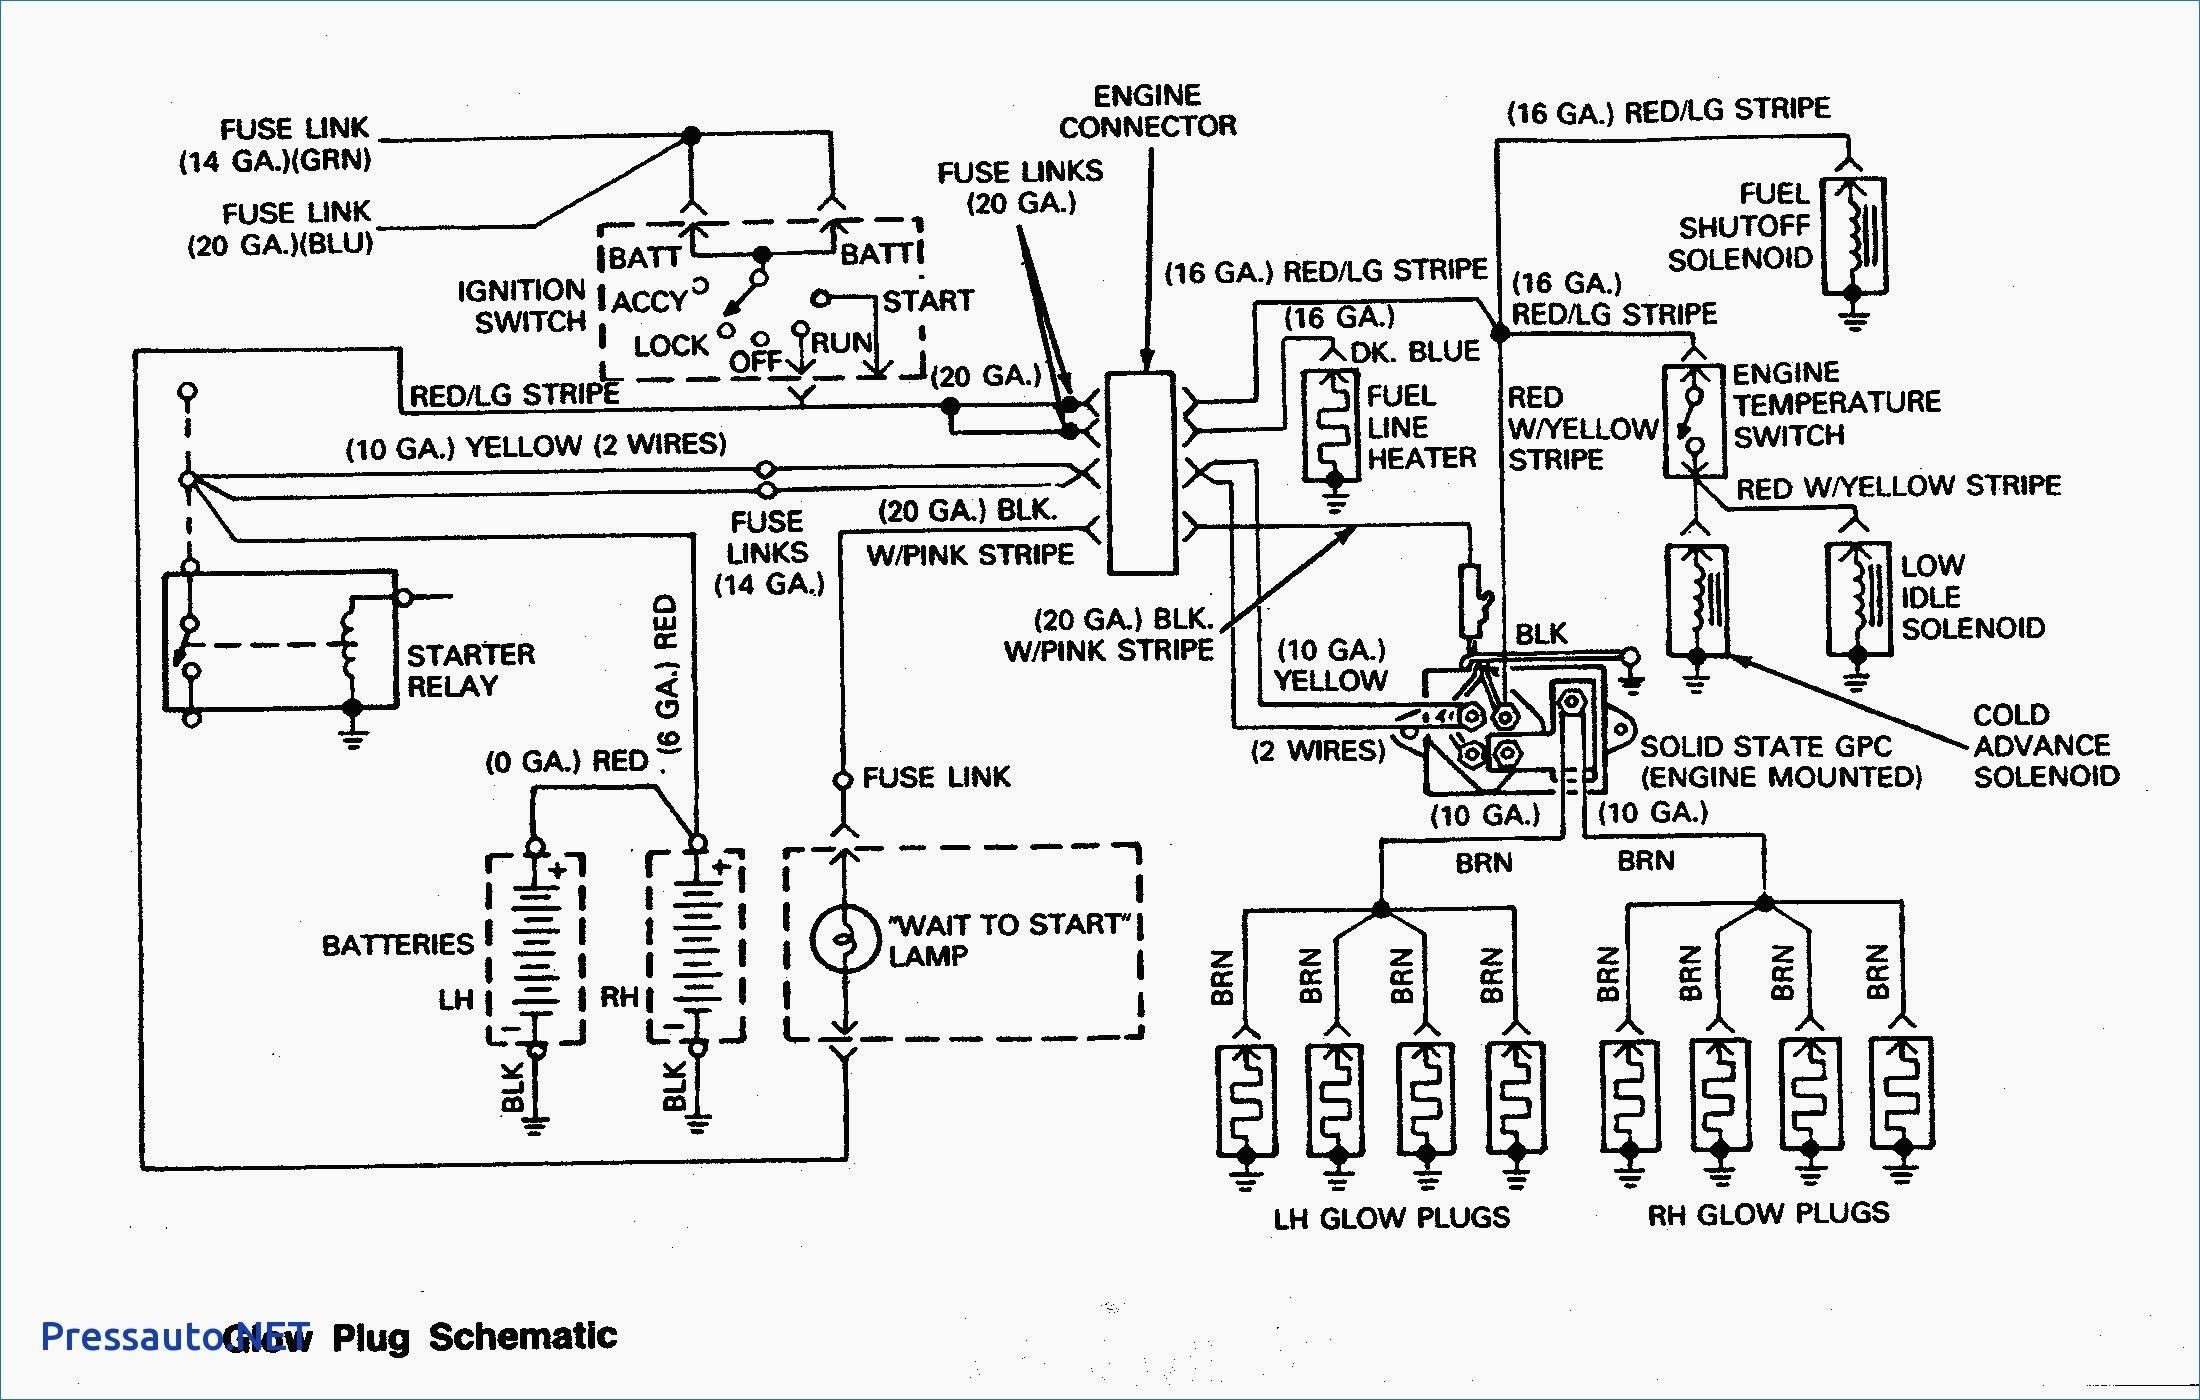 DIAGRAM] 1963 Ford Dump Truck Wiring Diagrams FULL Version HD Quality Wiring  Diagrams - JDIAGRAM.BANDBANNAMARIA.IT | Ford F550 Dump Truck Wiring Diagram |  | Diagram Database - bandbannamaria.it